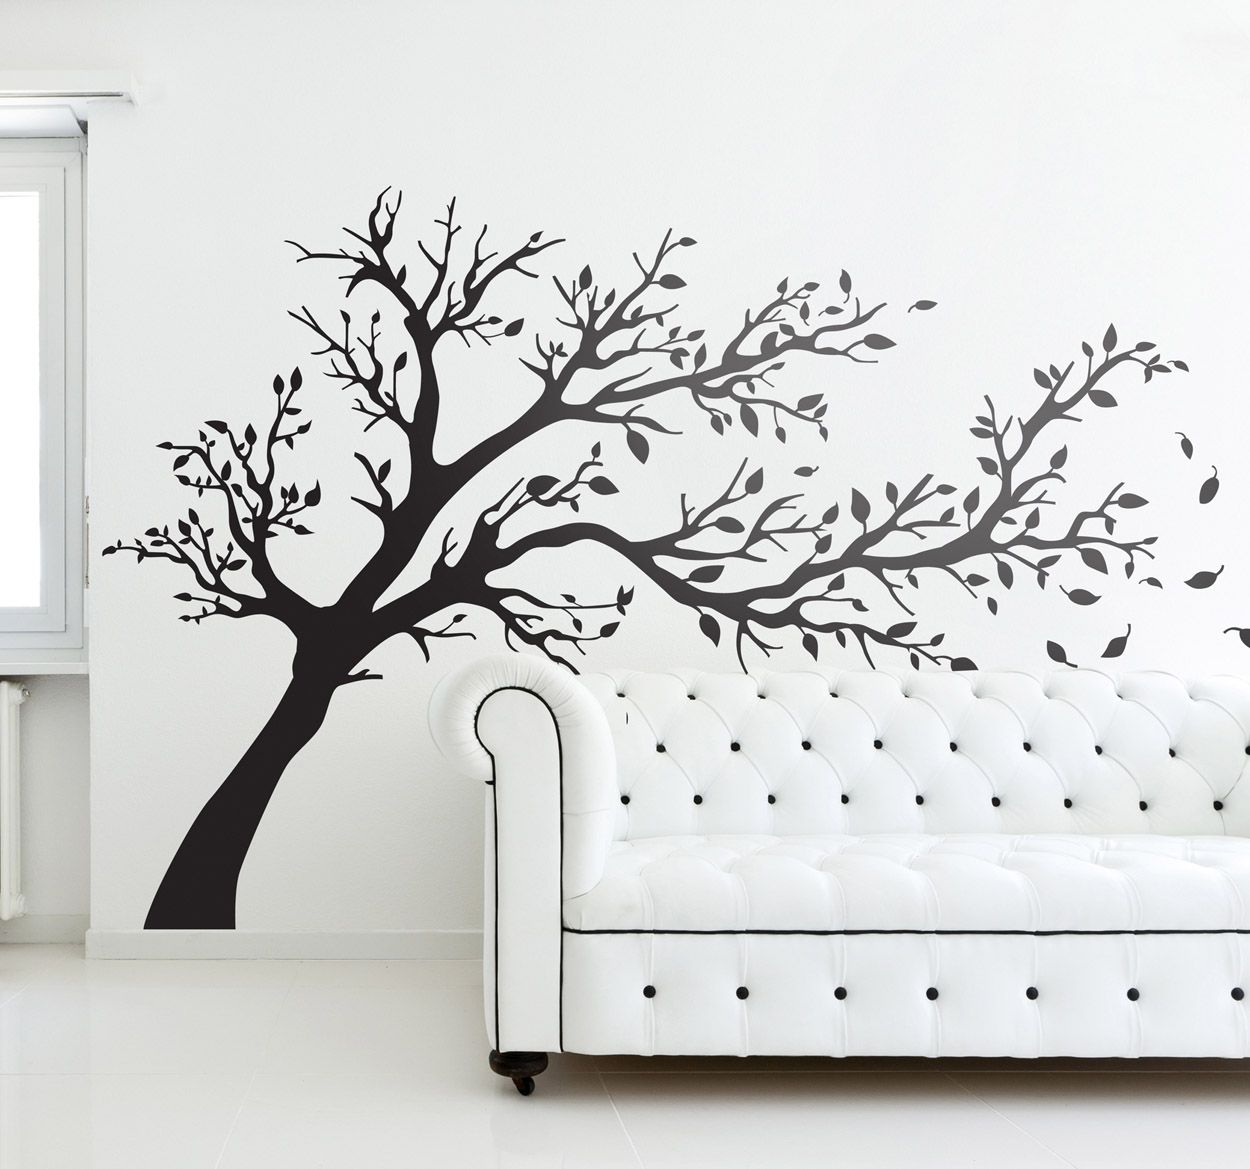 vinilos decorativos pared arboles - Buscar con Google | Árboles ... for Wall Sticker Tree Silhouette  45jwn